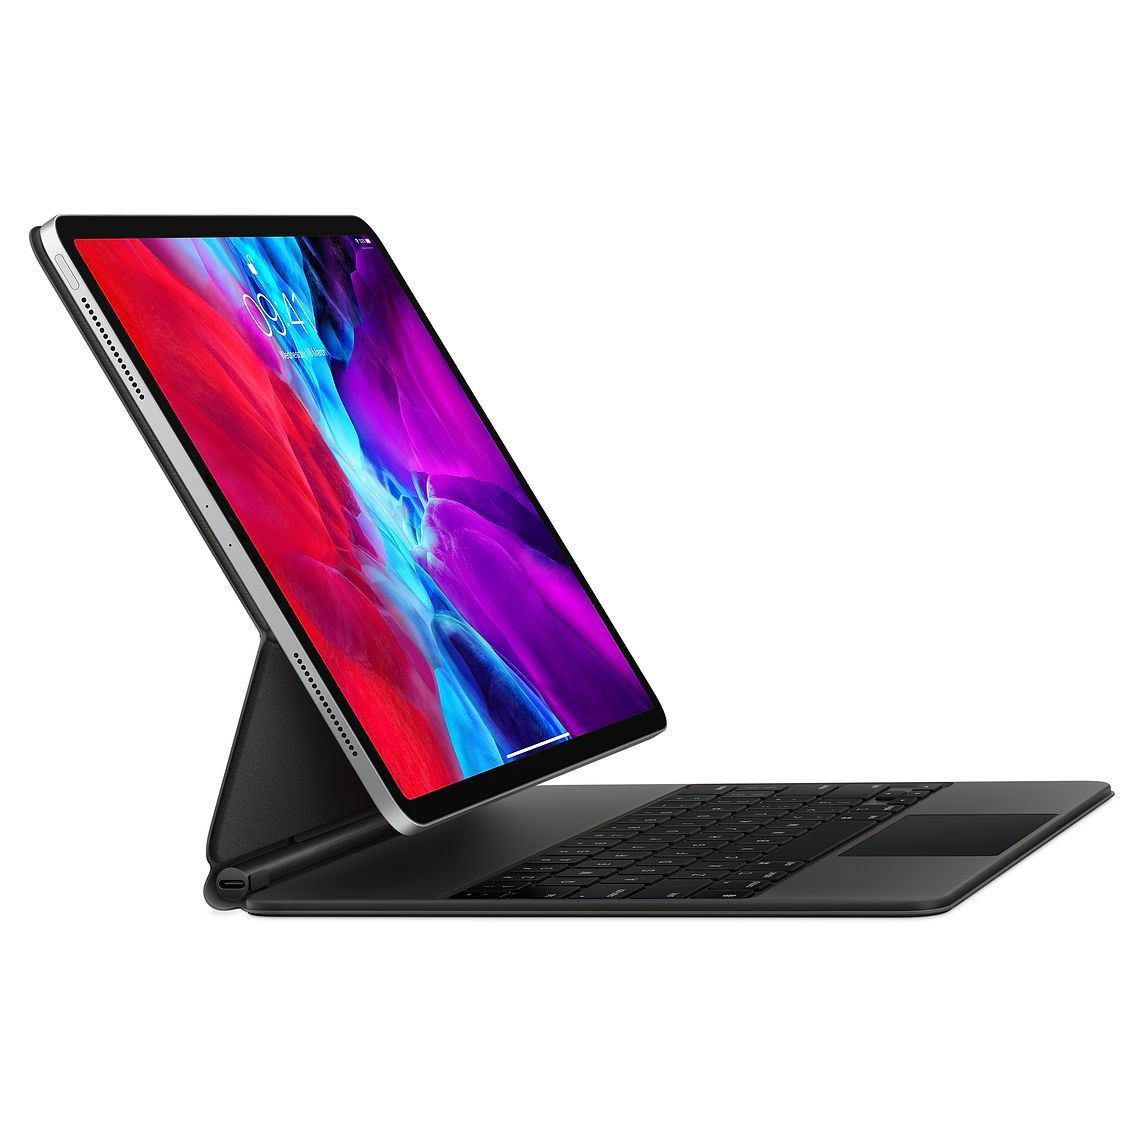 Picture of Magic Keyboard for iPad Pros & iPad Air (4th Gen)